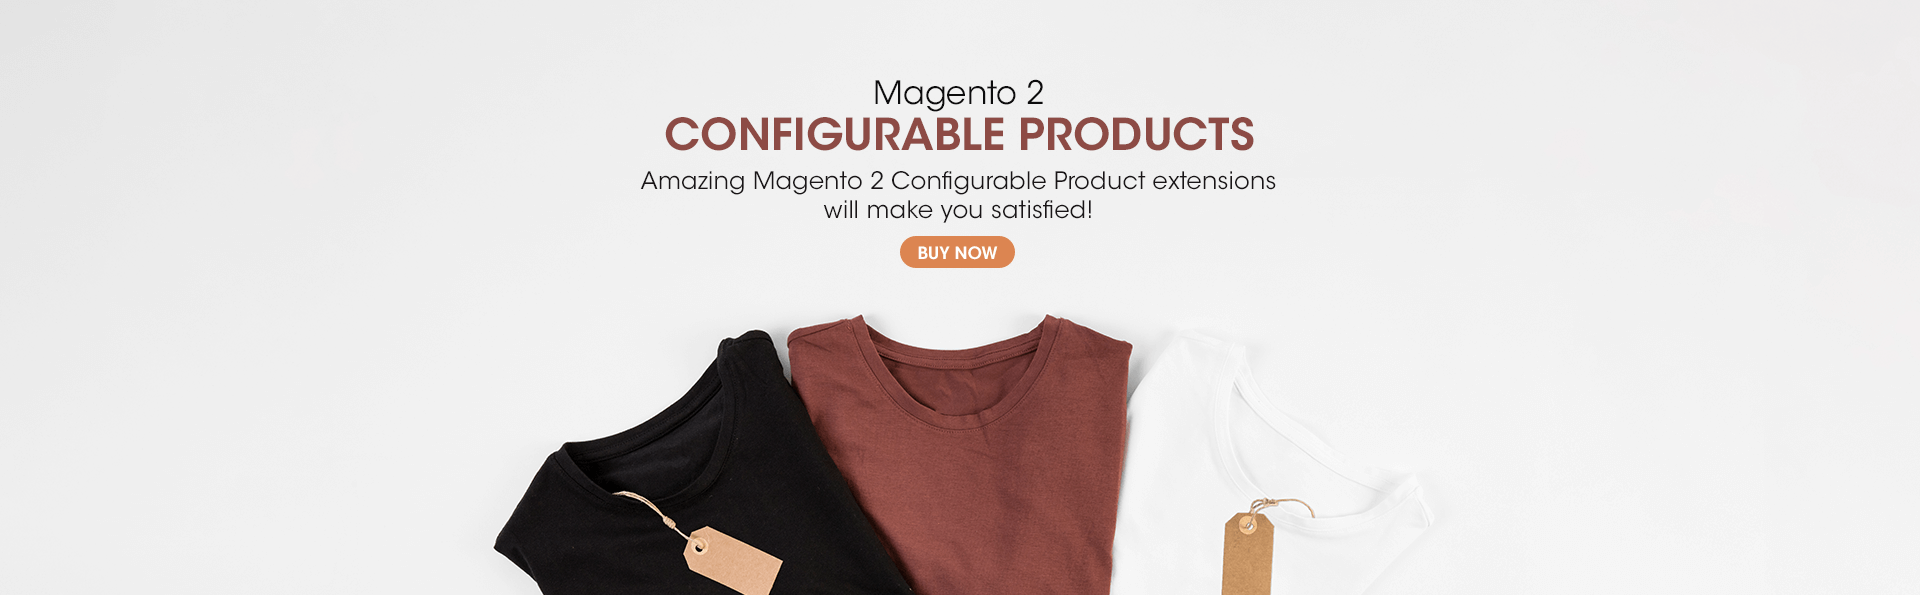 magento 2 configurable wholsale display